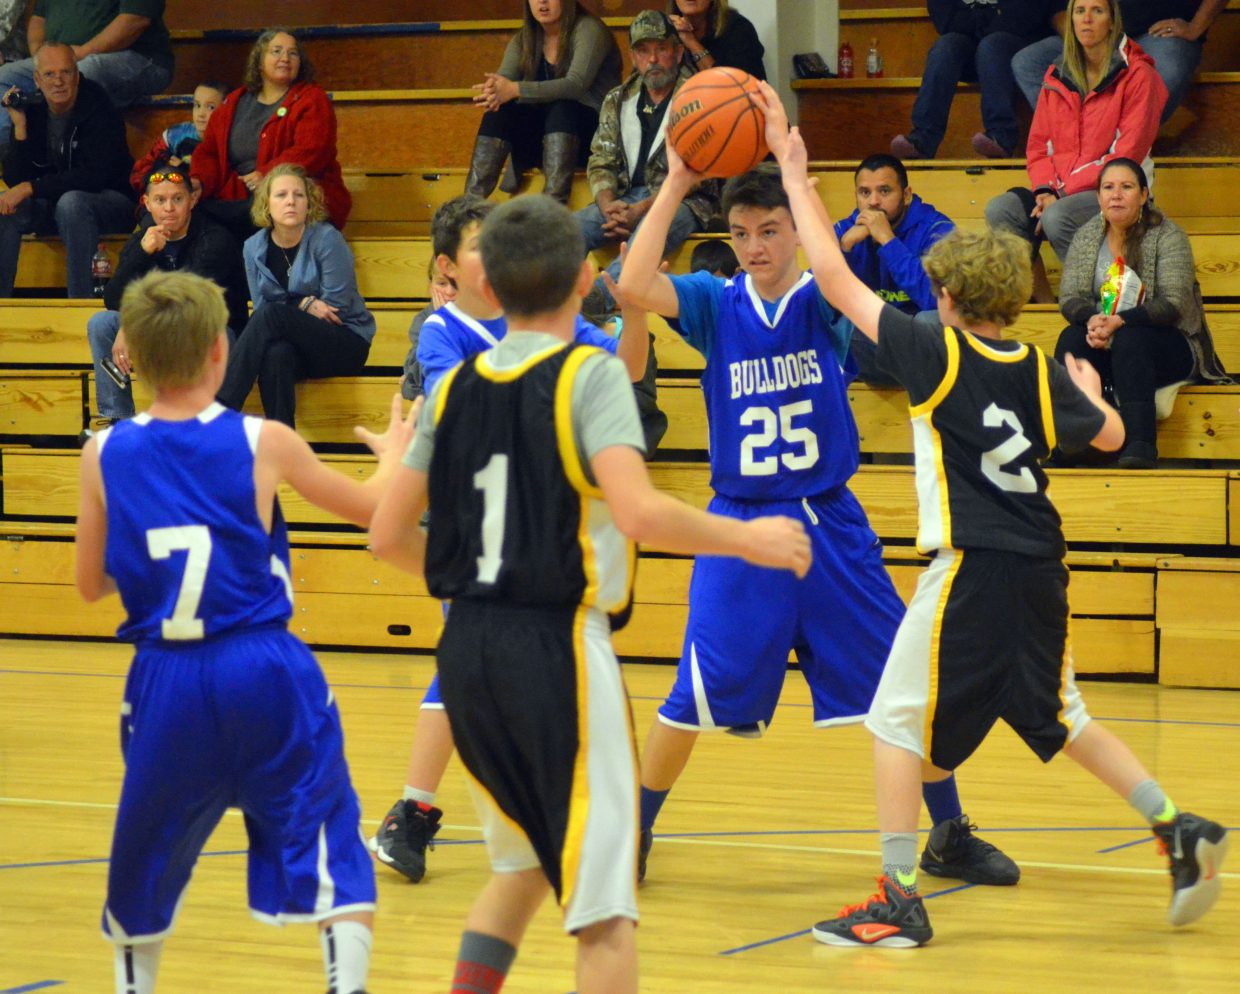 Chase Jeffcoat (25) prepares to pass inside to teammate Jeremiah Zigler (7) during the Craig Middle School eighth-grade boys basketball B-Team's Thursday game against Meeker. The Bulldogs lost, 29-11.